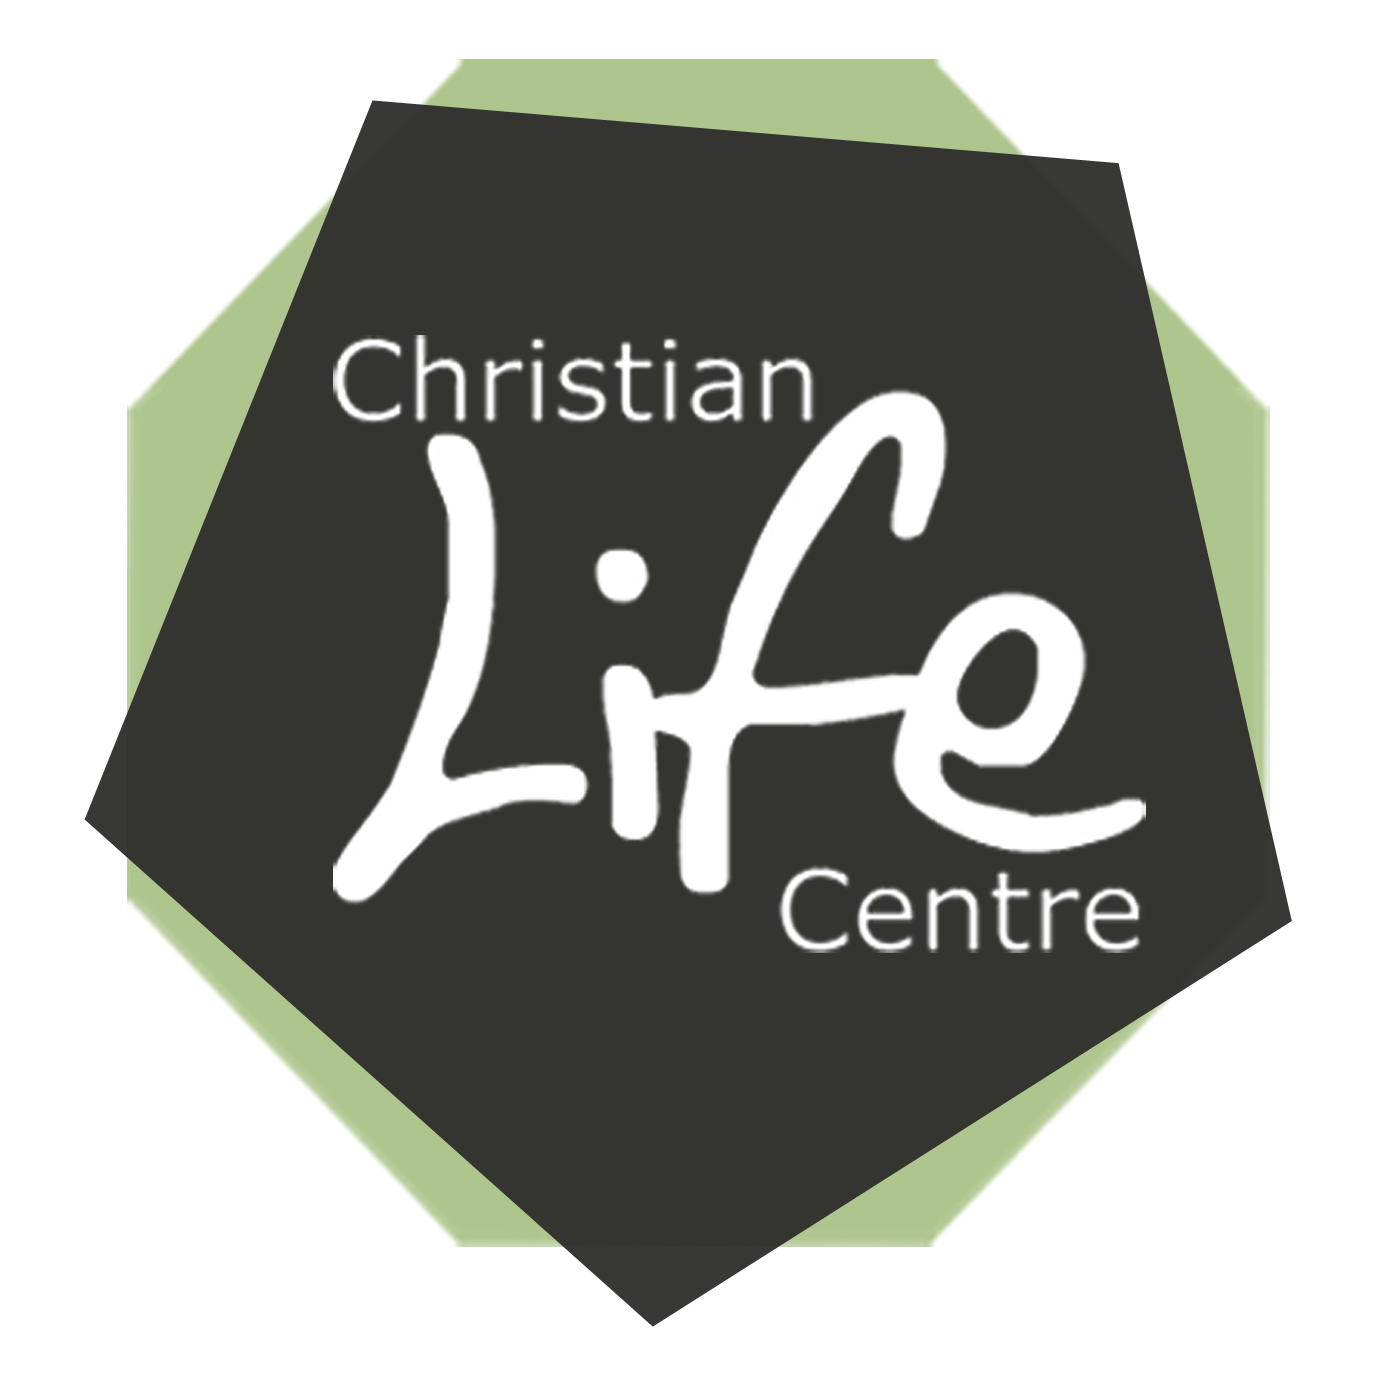 Christian Life Centre Hereford